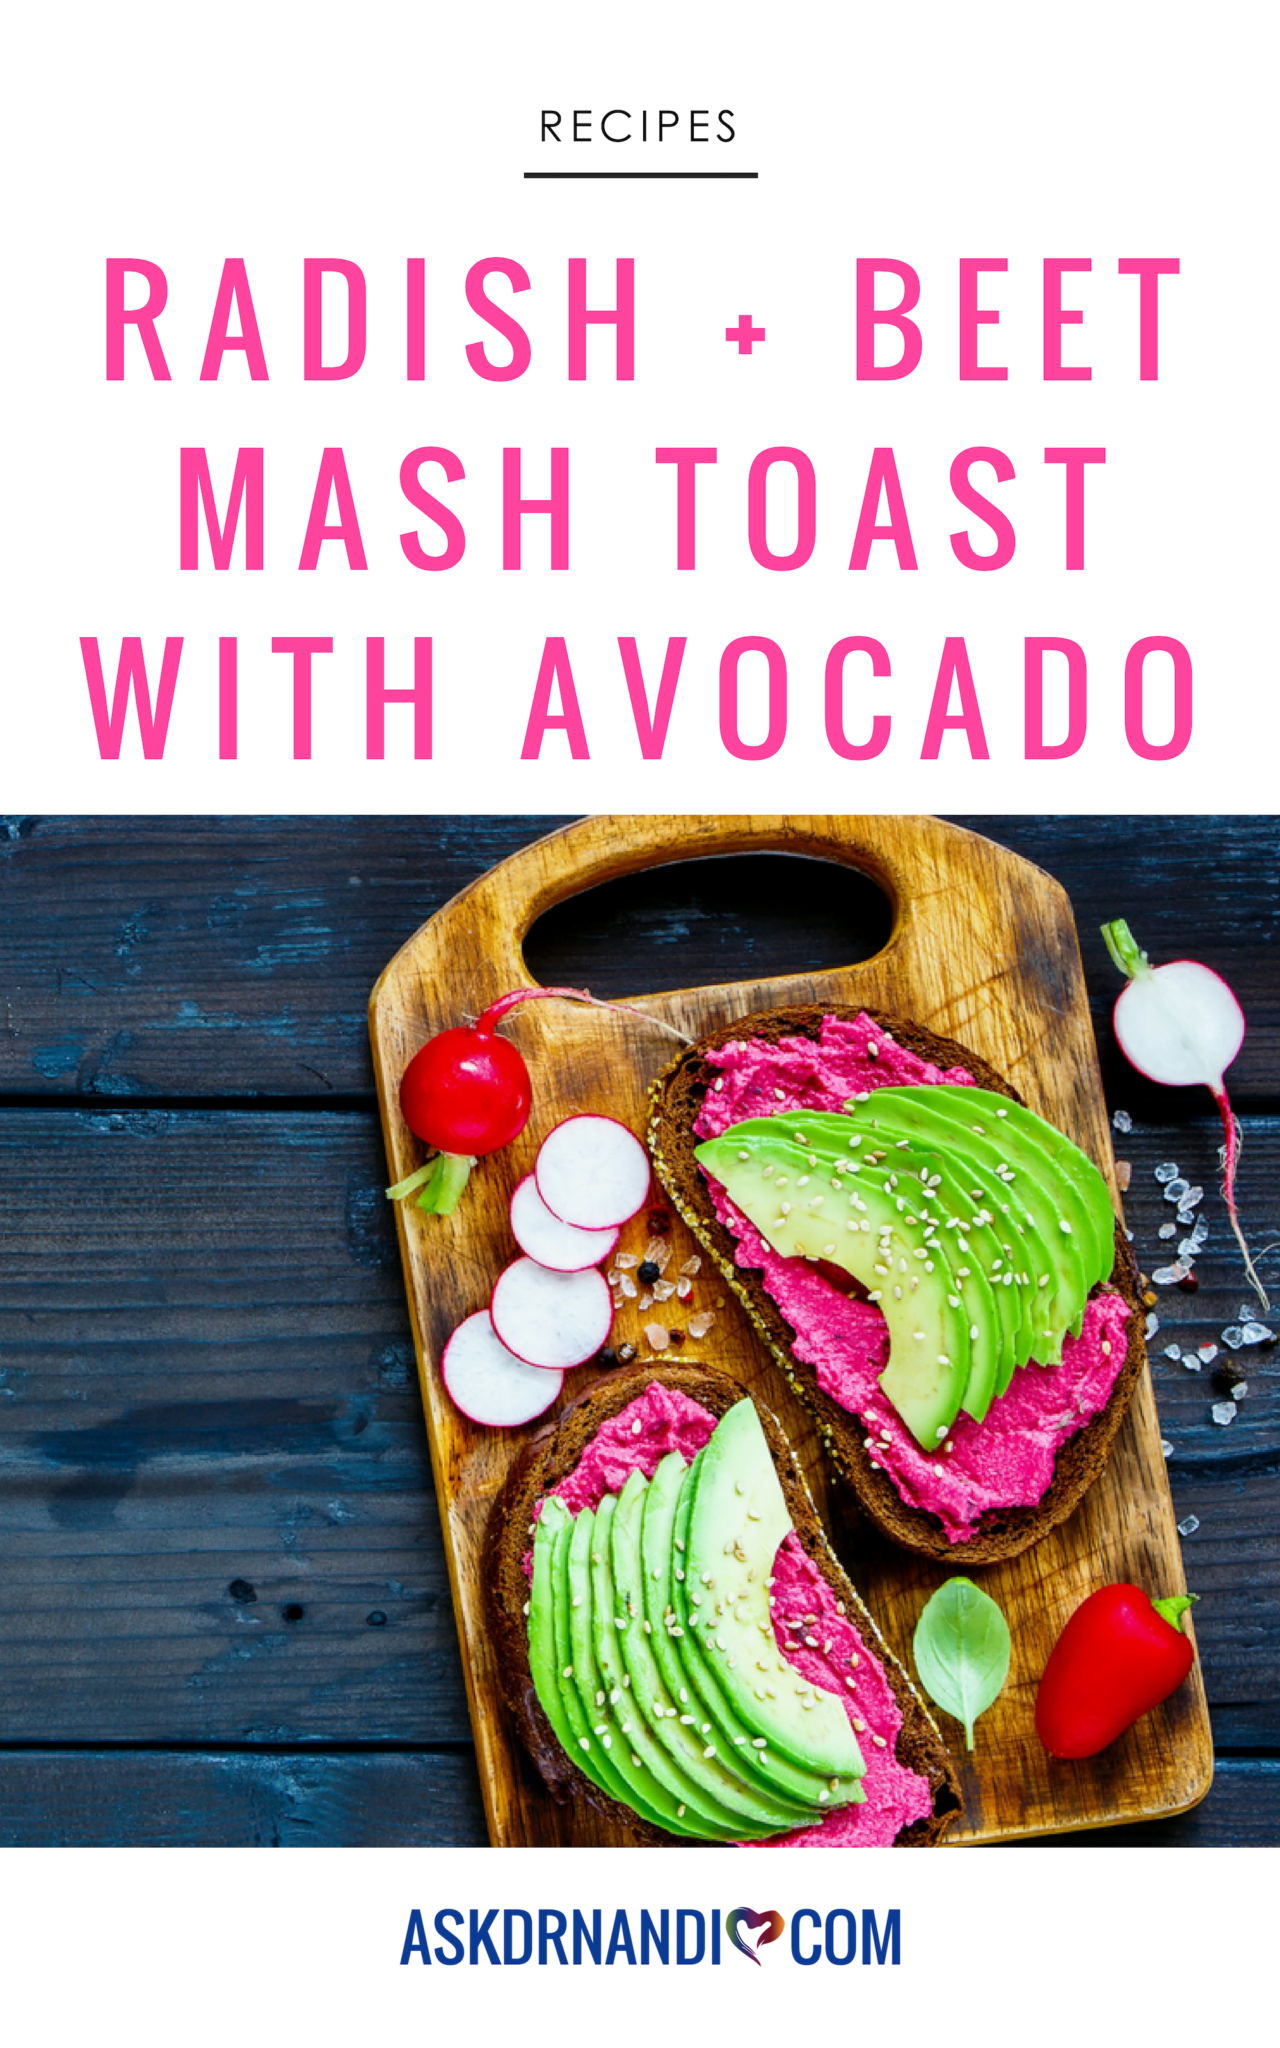 Radish & Beet Mash Toast with Avocado